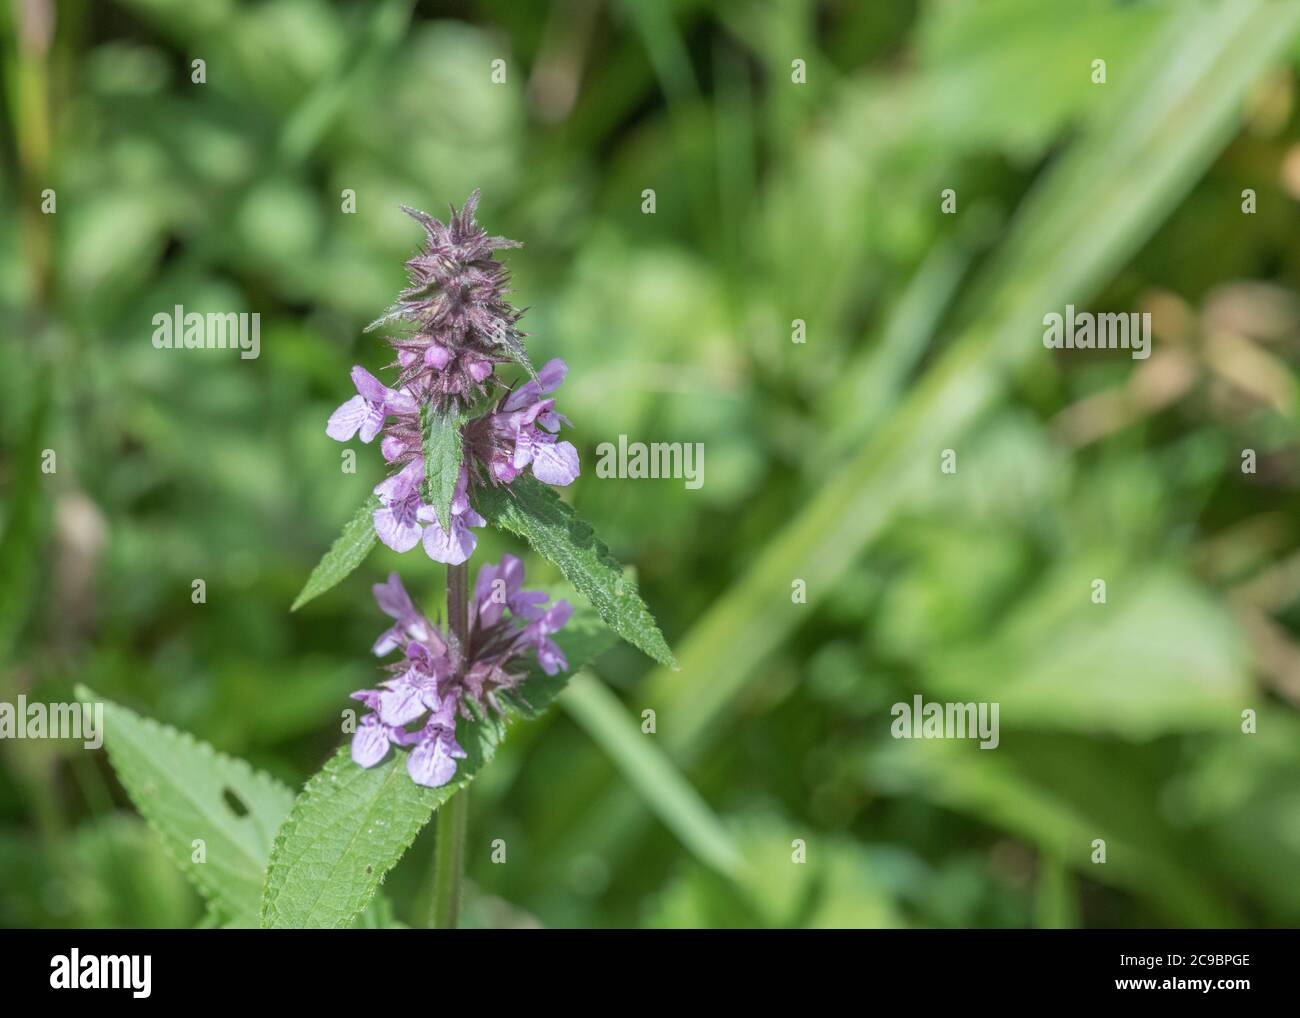 Leaves and purple flowers of Marsh Woundwort / Stachys palustris seen growing in damp field corner. Former medicinal plant used in herbal remedies. Stock Photo